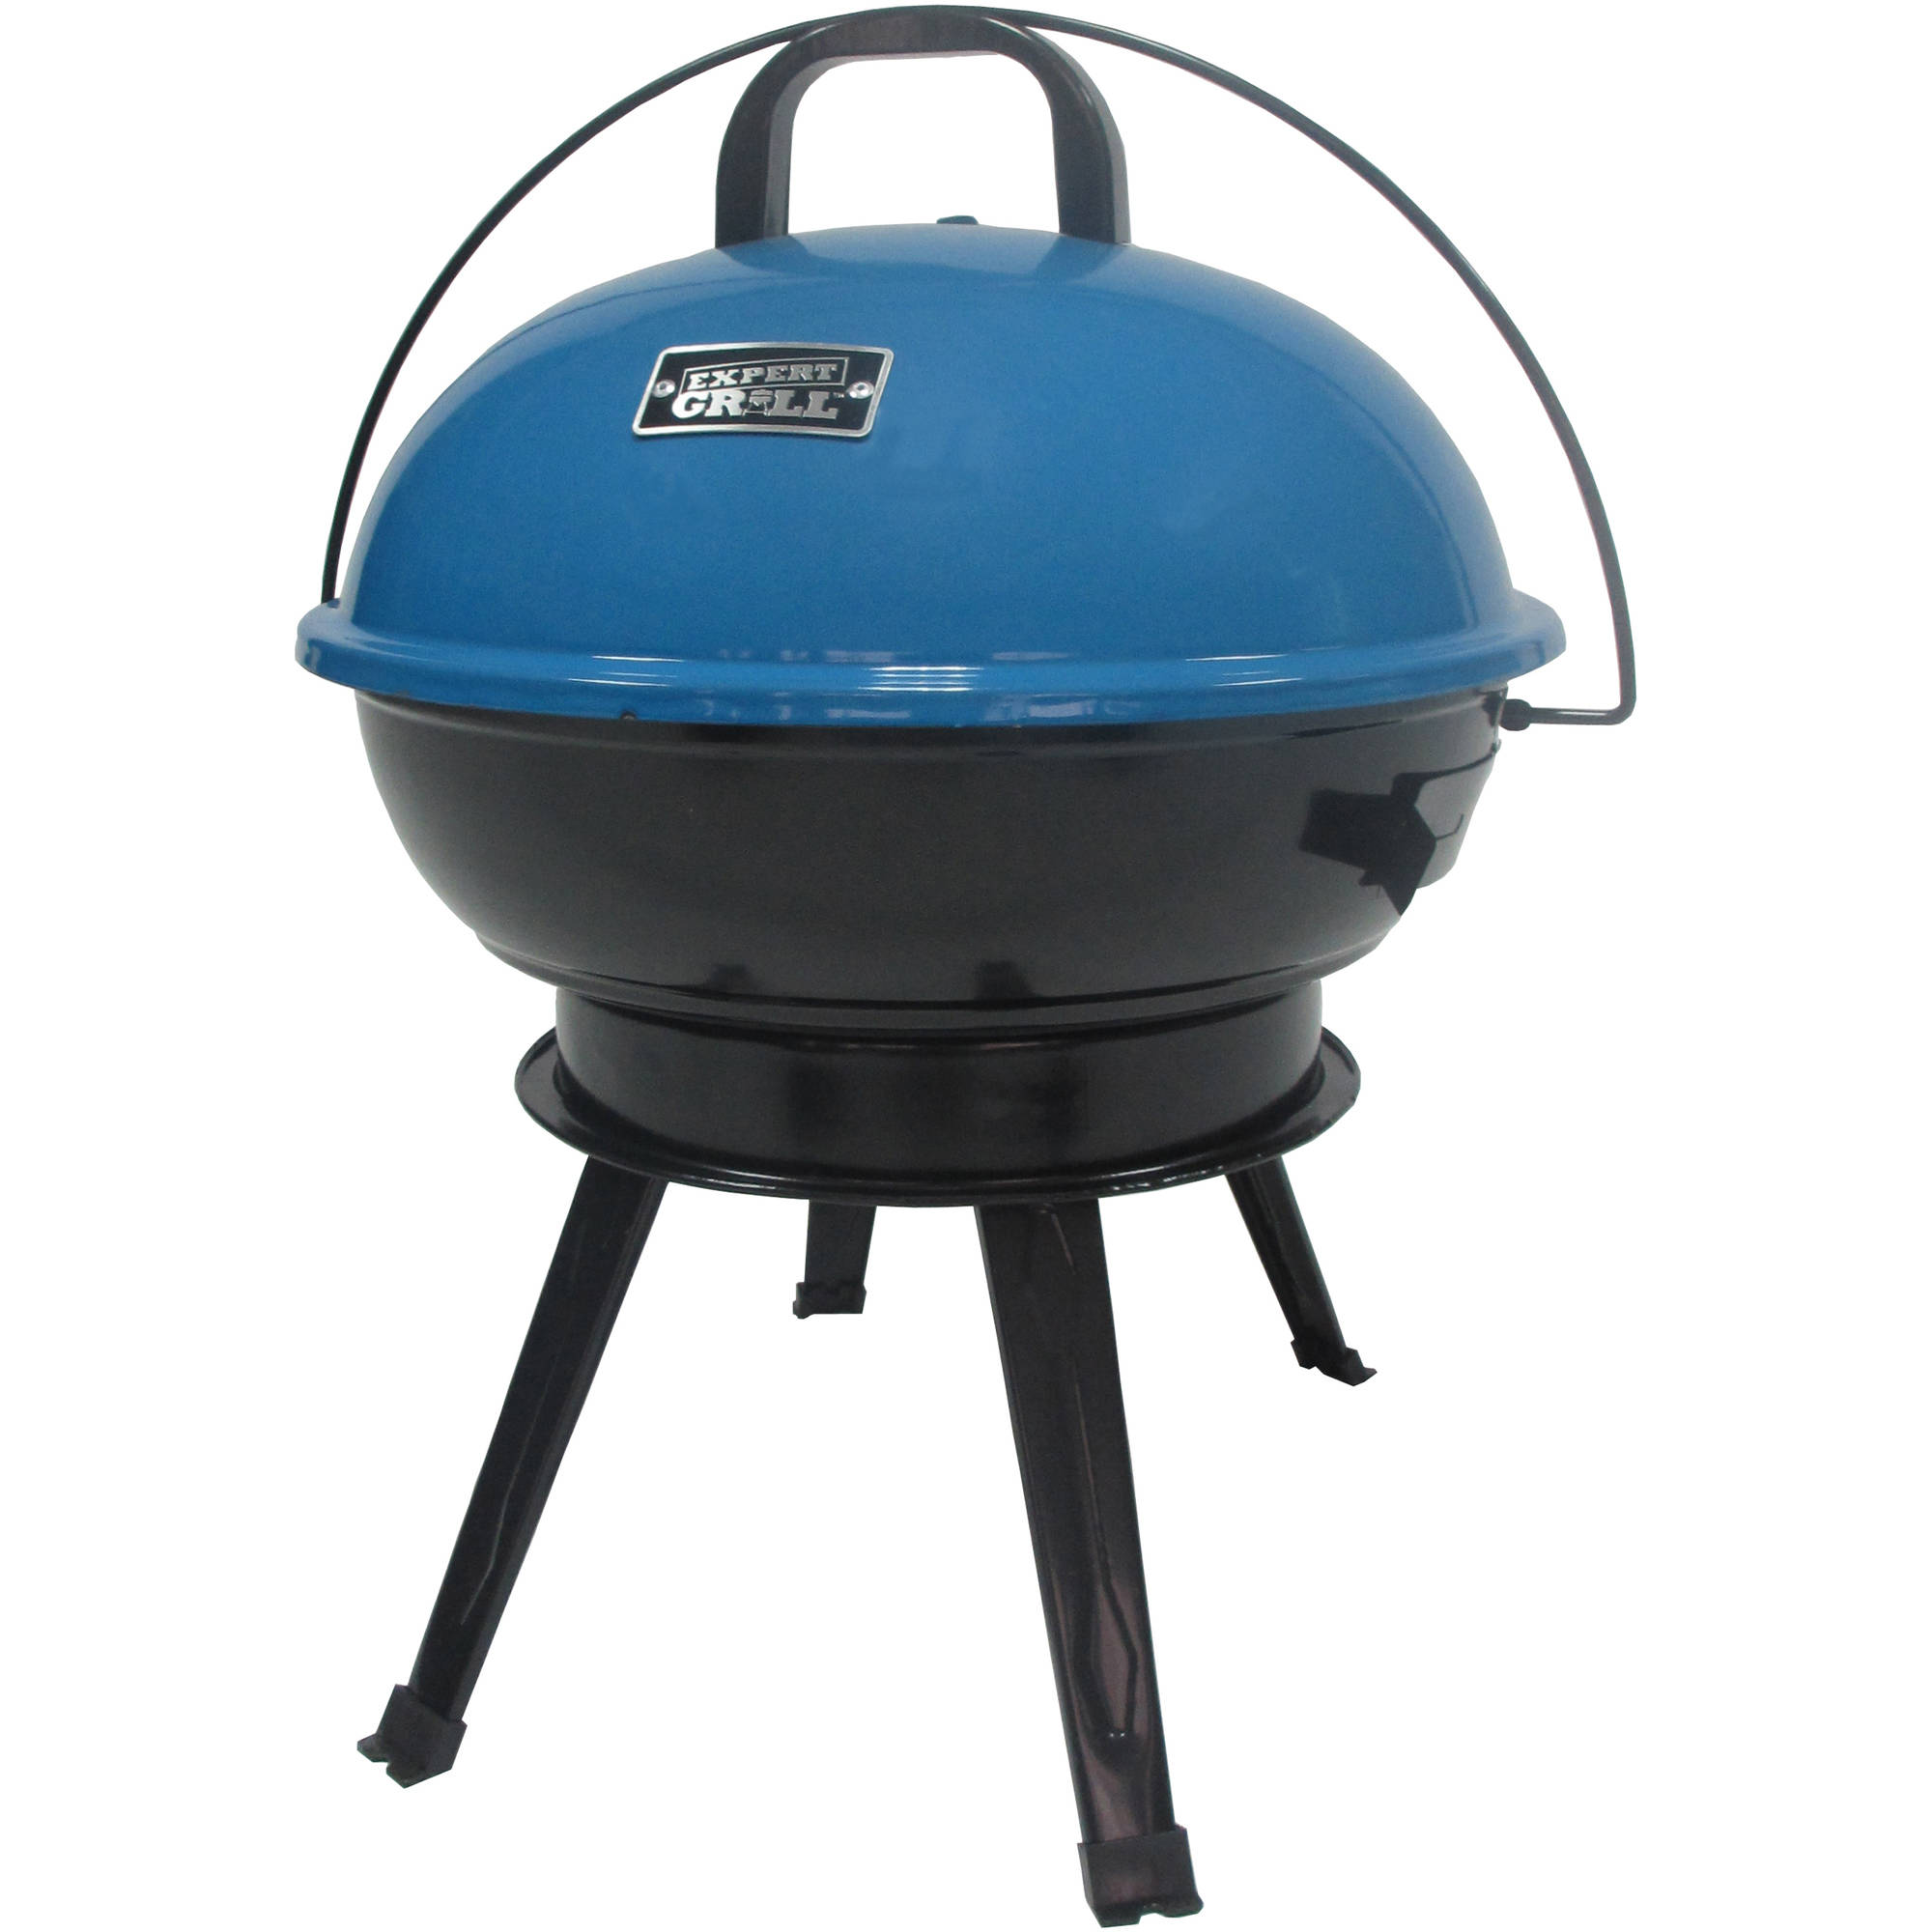 "Expert Grill 14.5"" Portable Charcoal Grill, Summer Lagoon"